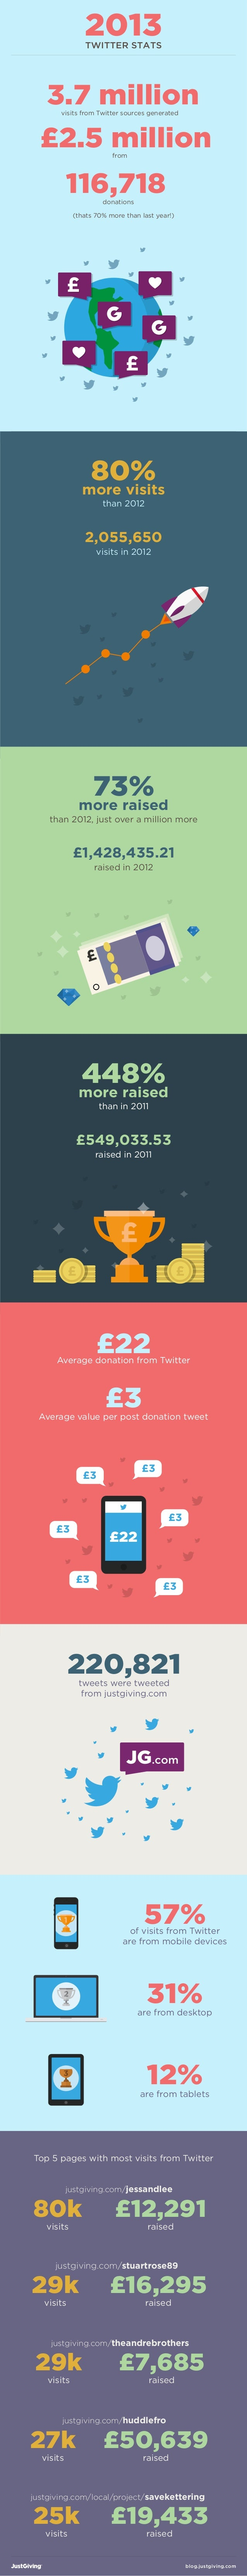 2013 TWITTER STATS  3.7 million visits from Twitter sources generated  £2.5 million from  116,718 donations  (thats 70% mo...